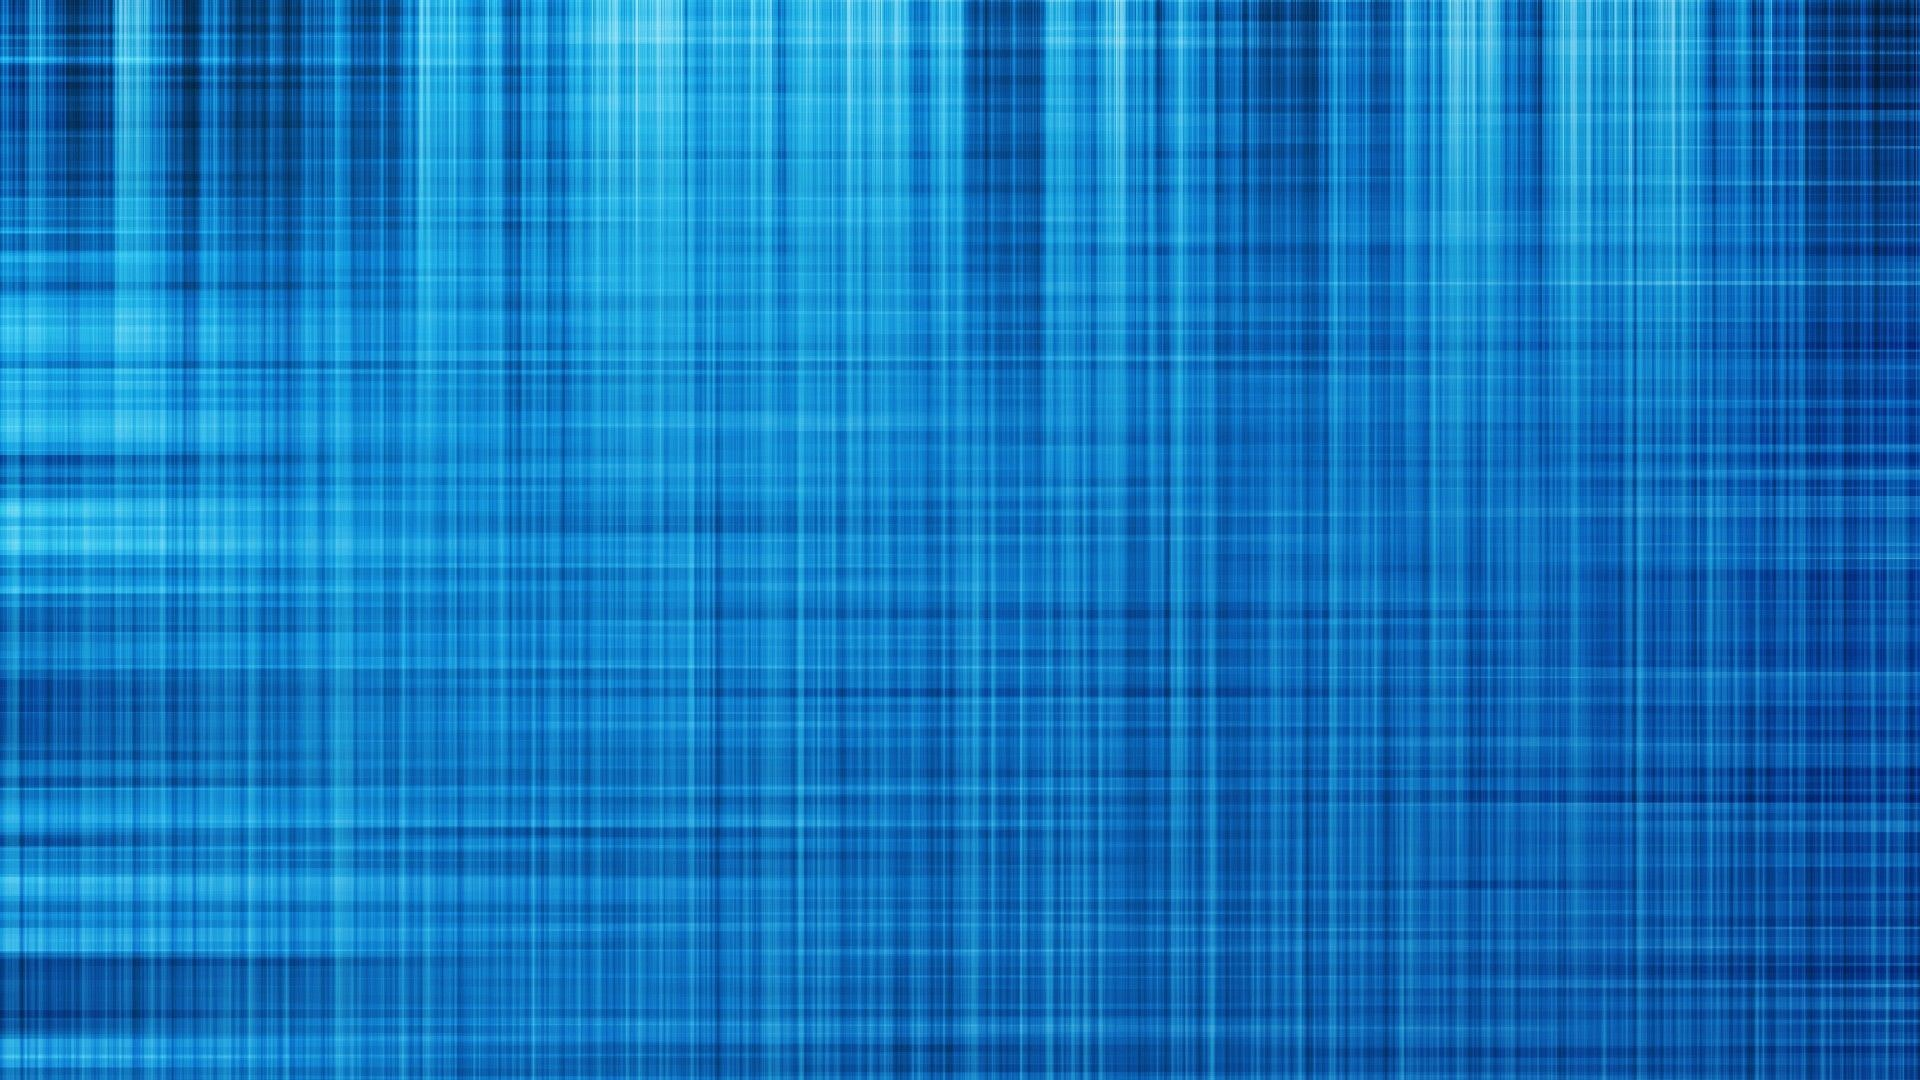 Res: 1920x1080, blue textured wall coverings - Google Search